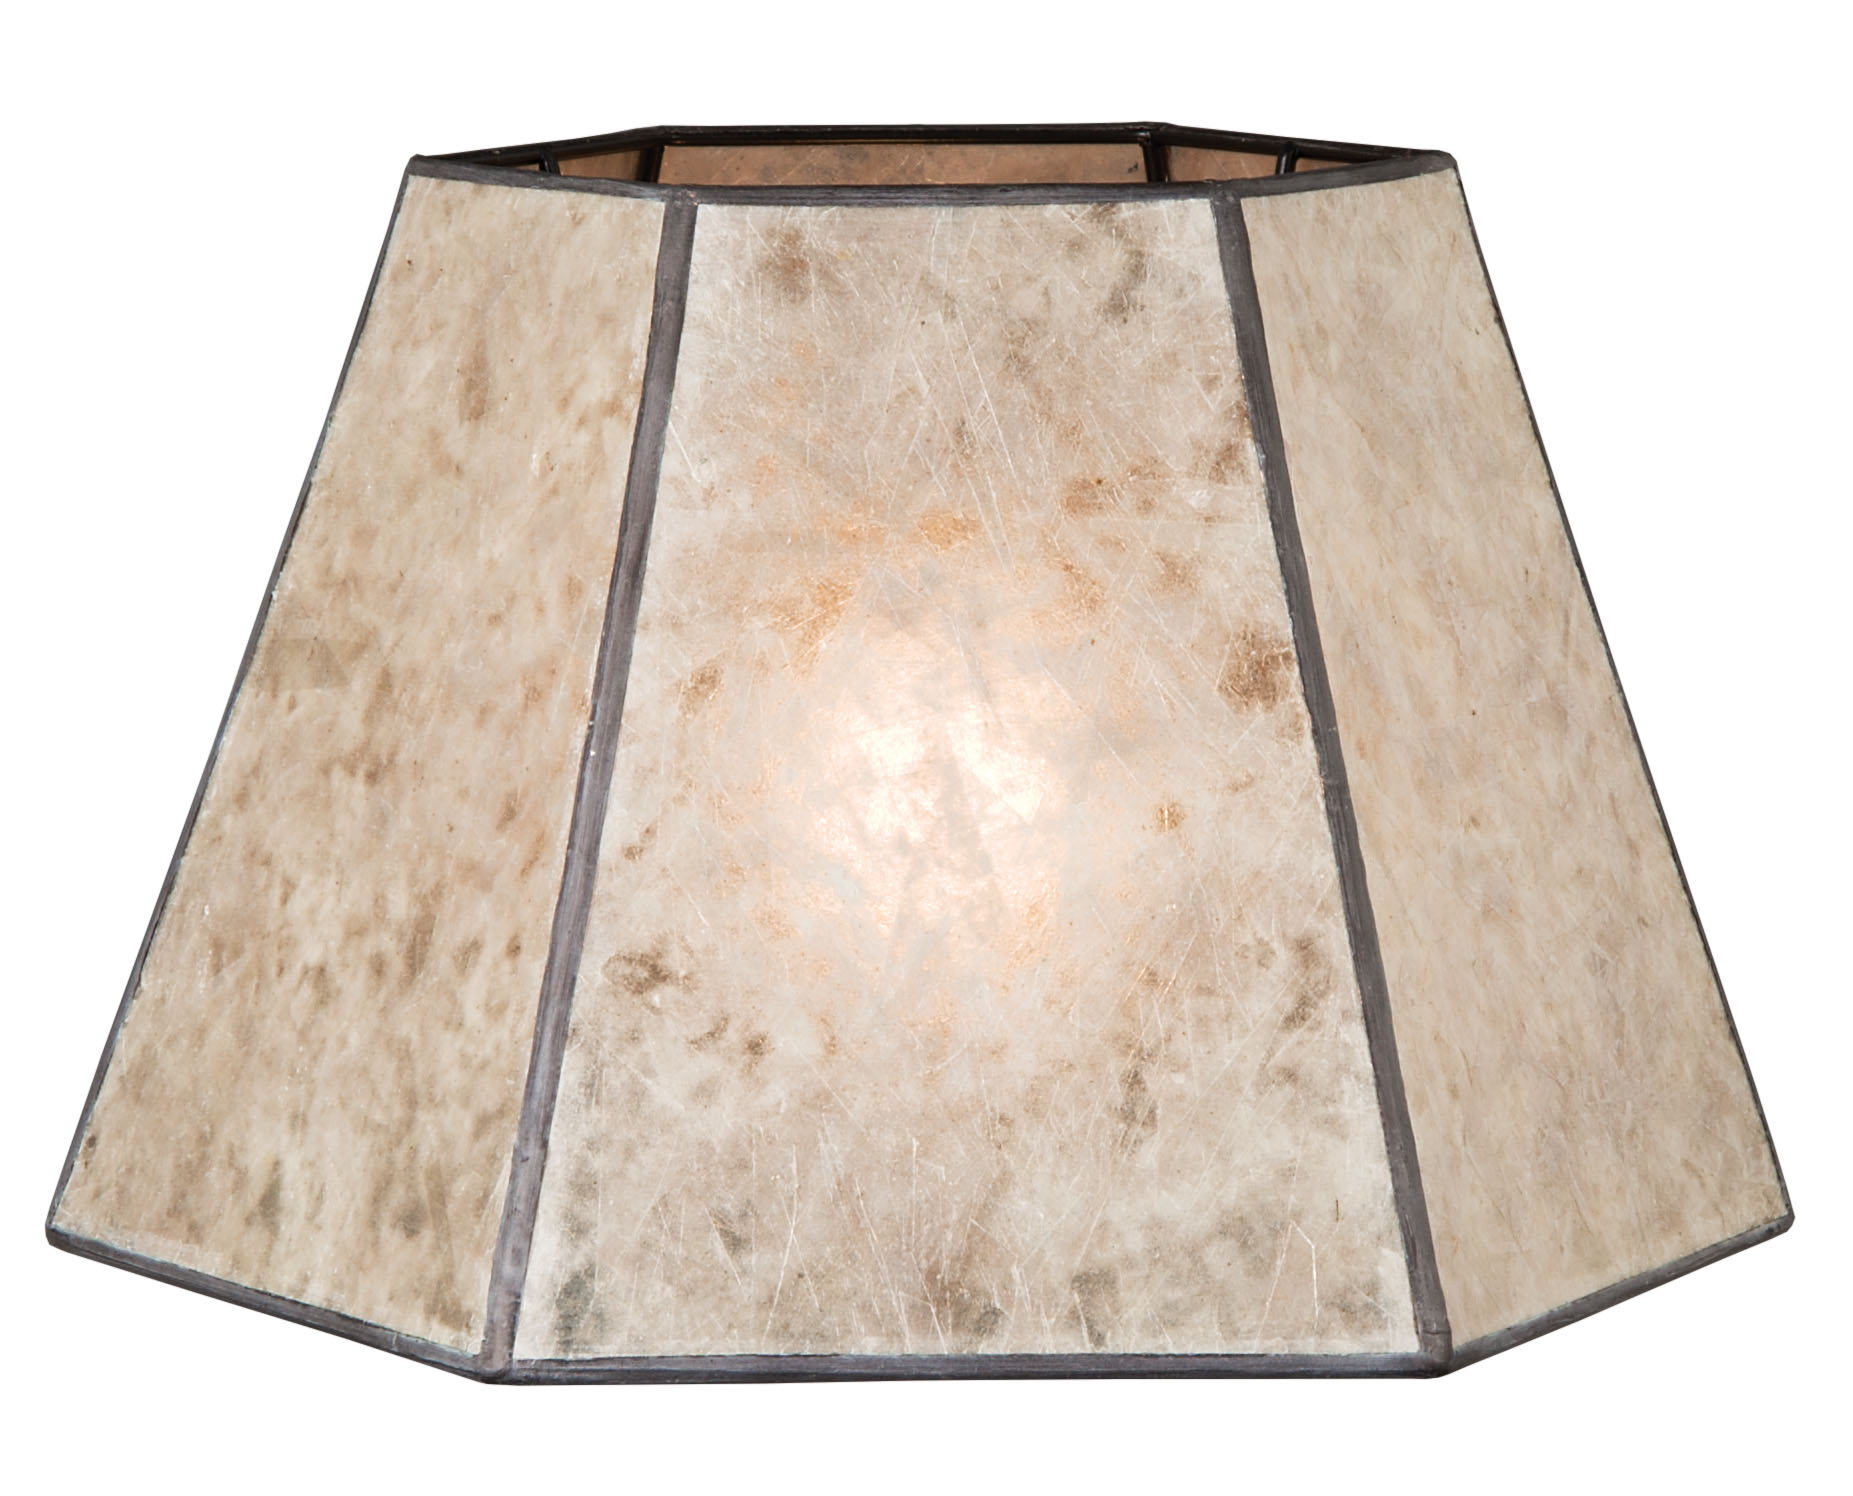 Amazing View Image In New Window 05702N   Parchment Color Hexagon Style Mica  Lampshade ...